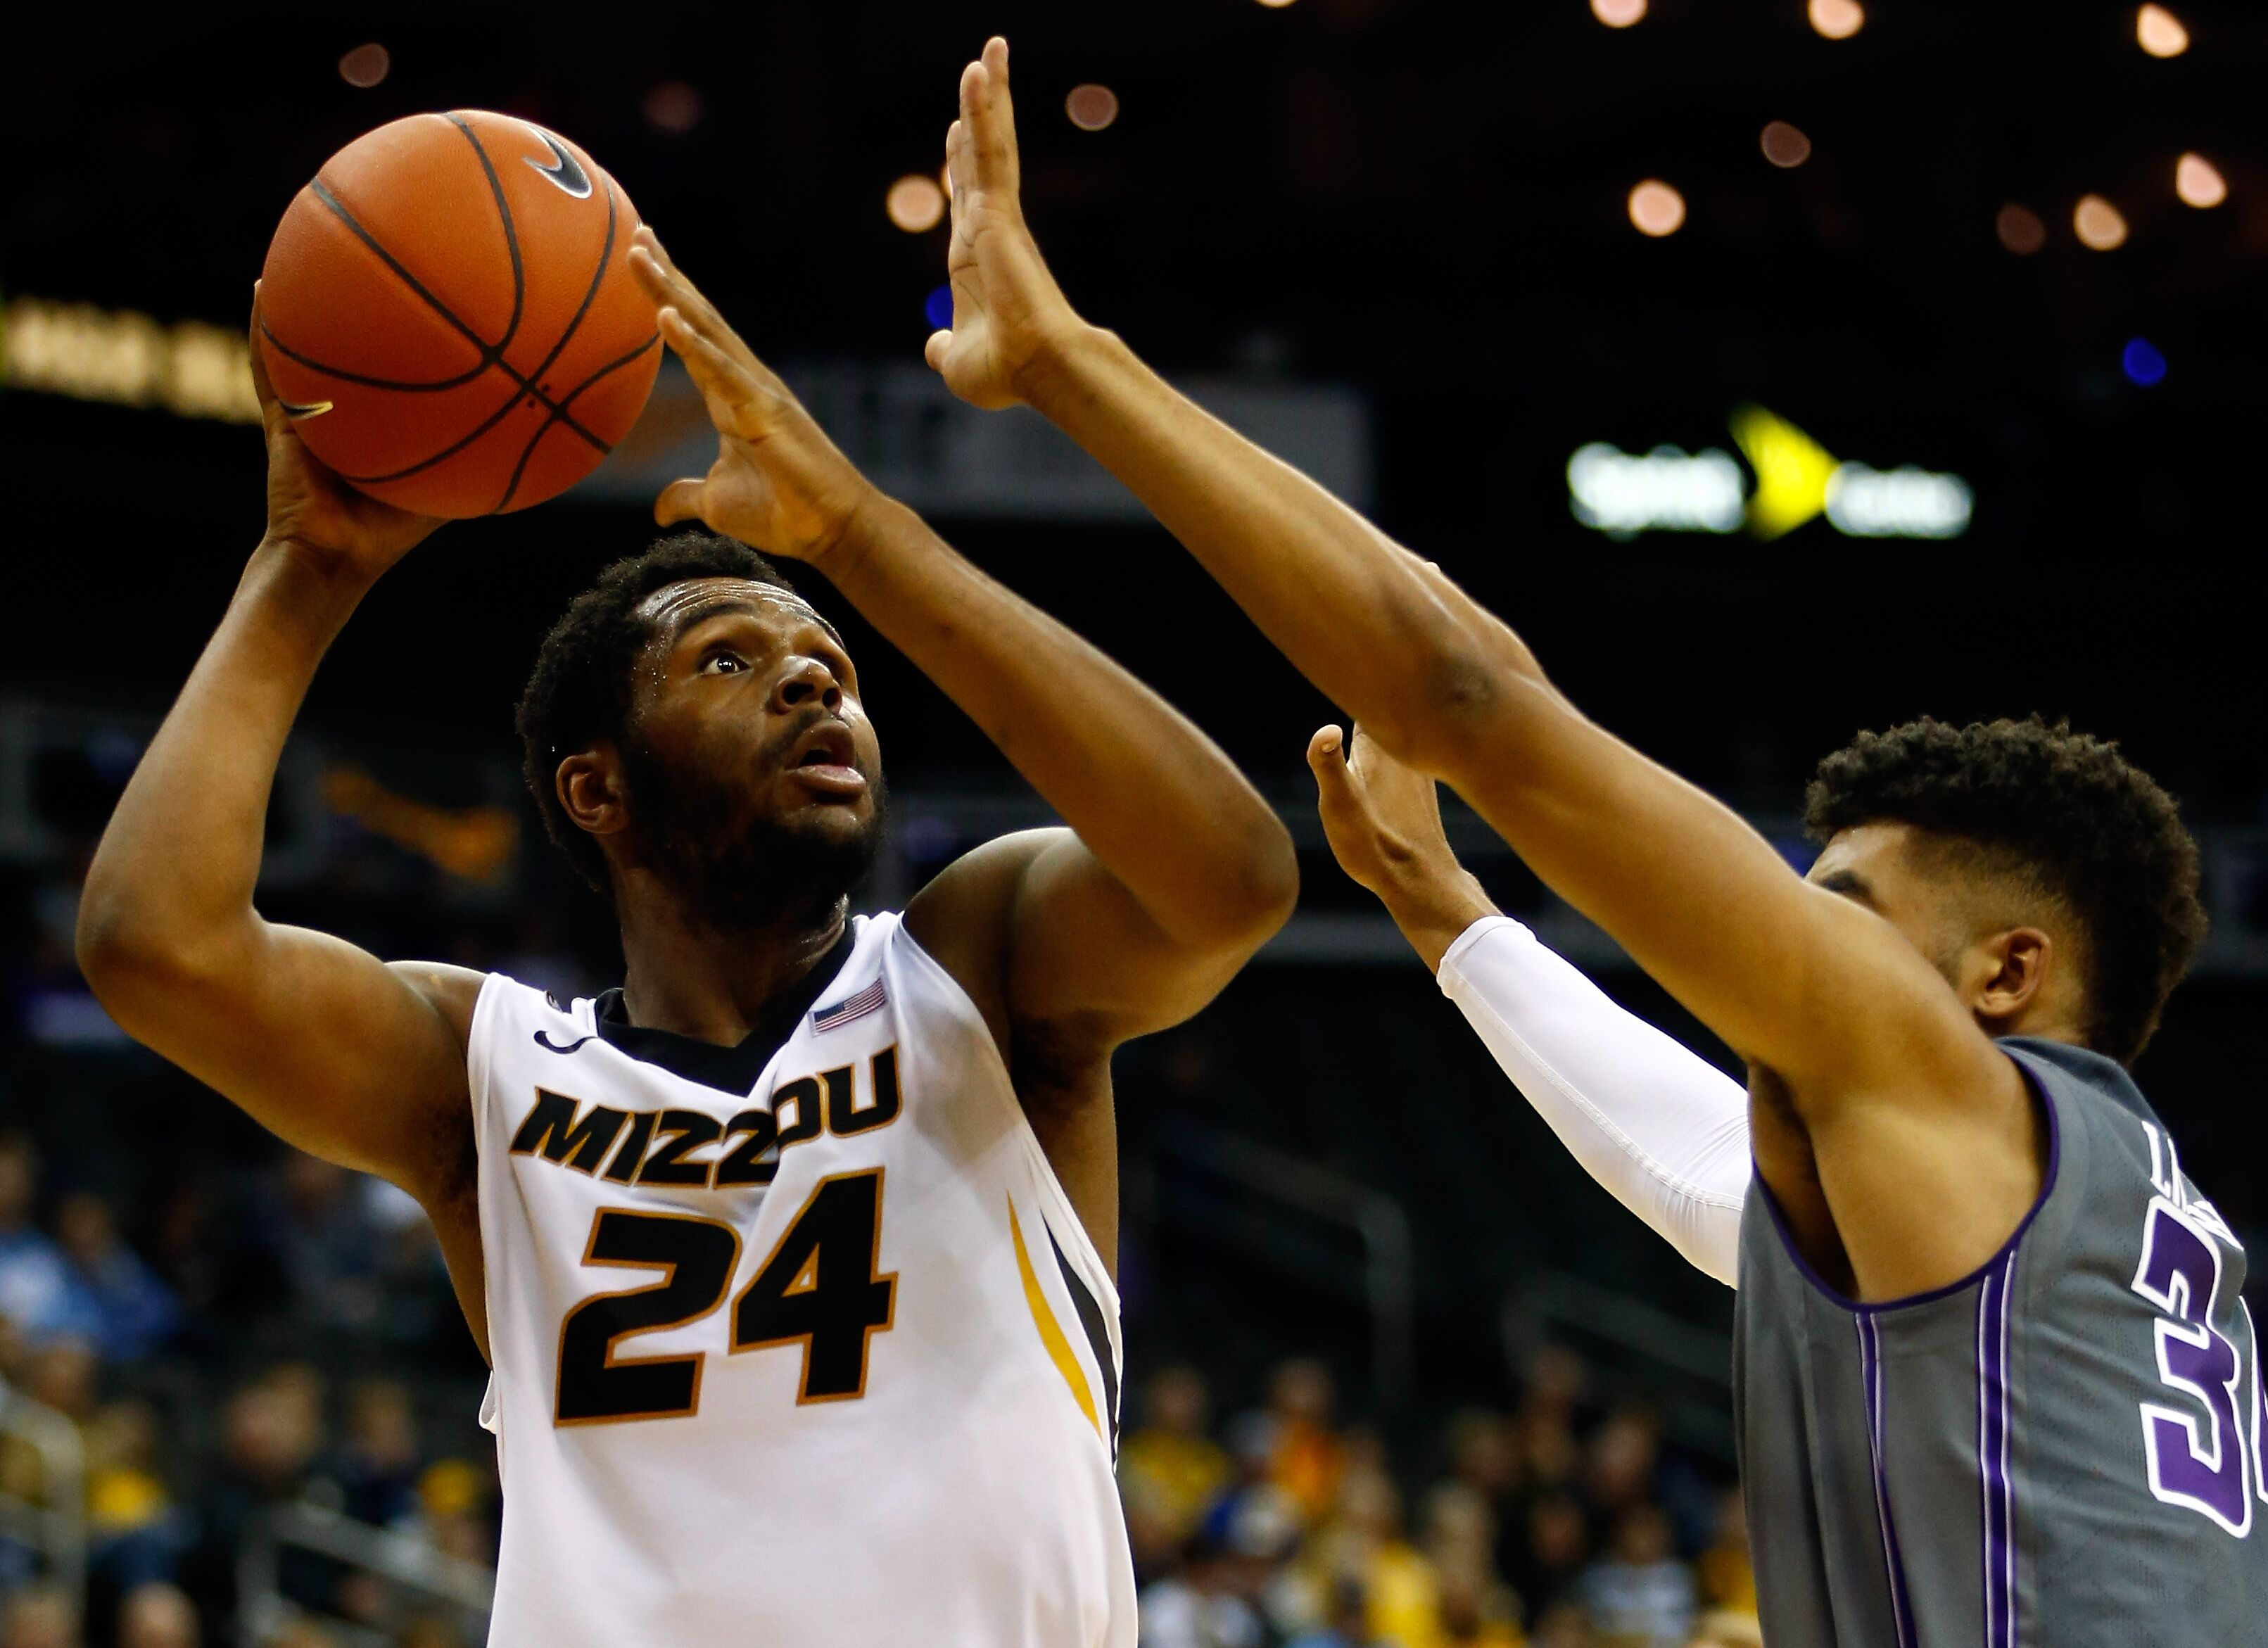 Iowa state vs missouri college basketball game preview tv schedule publicscrutiny Images